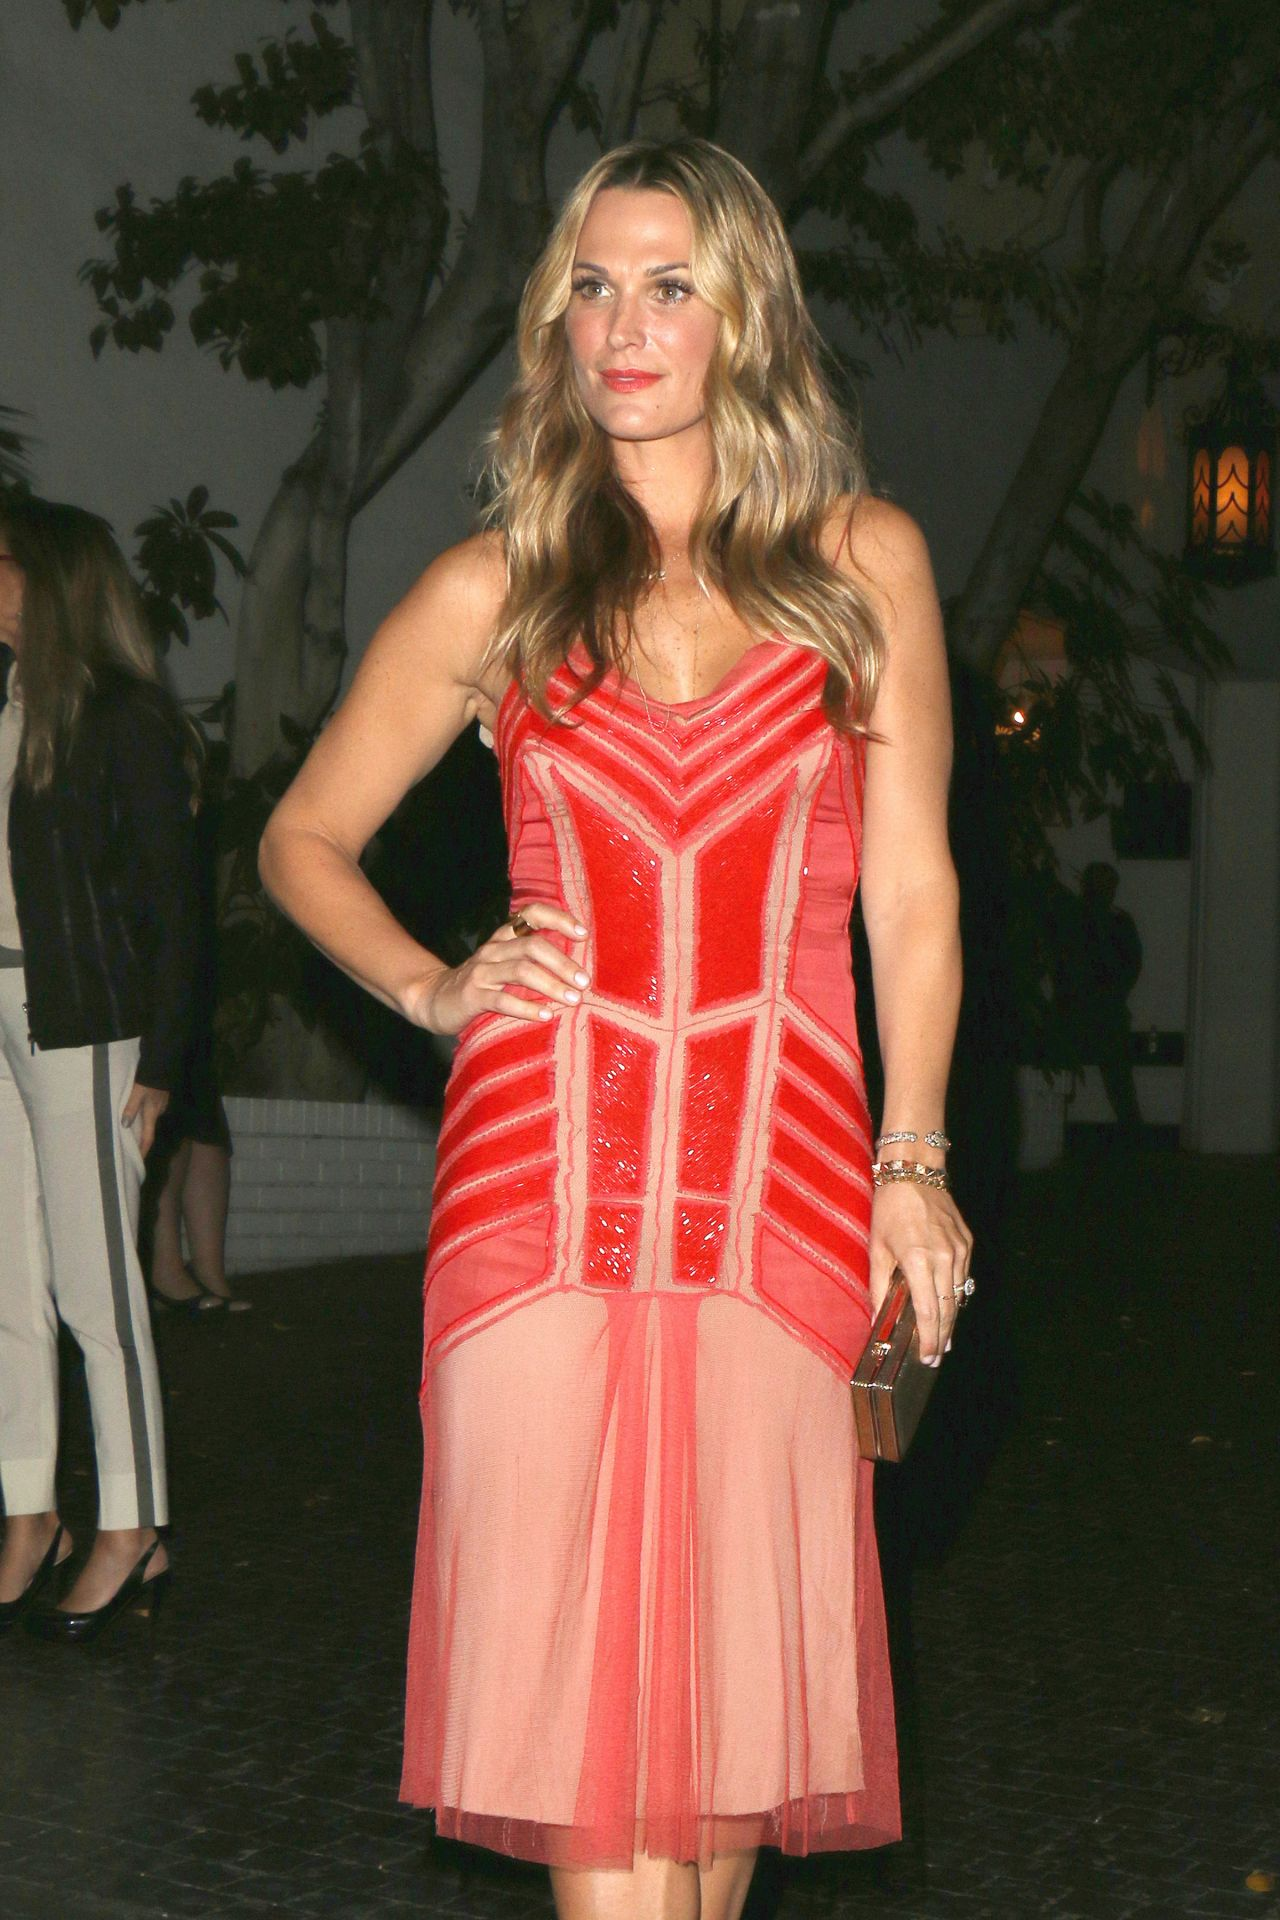 Molly Sims - W Magazine Celebrates The Golden Globes in Los Angeles